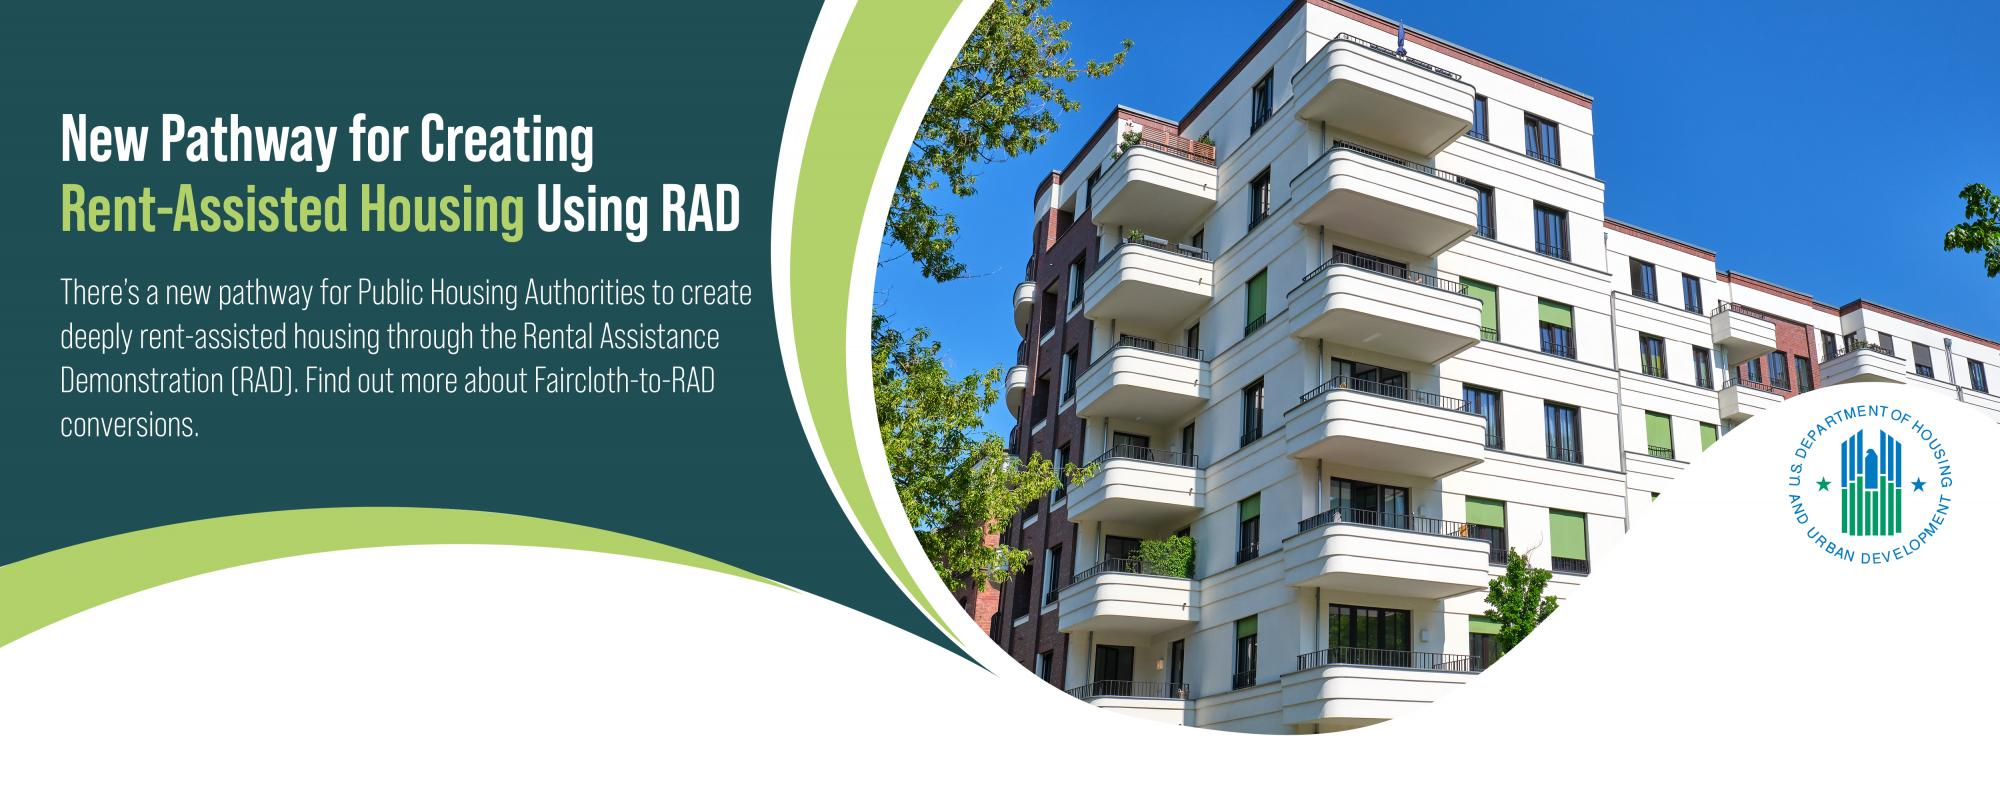 [New Pathway for Creating Rent-Assisted Housing Using RAD]. HUD Photo